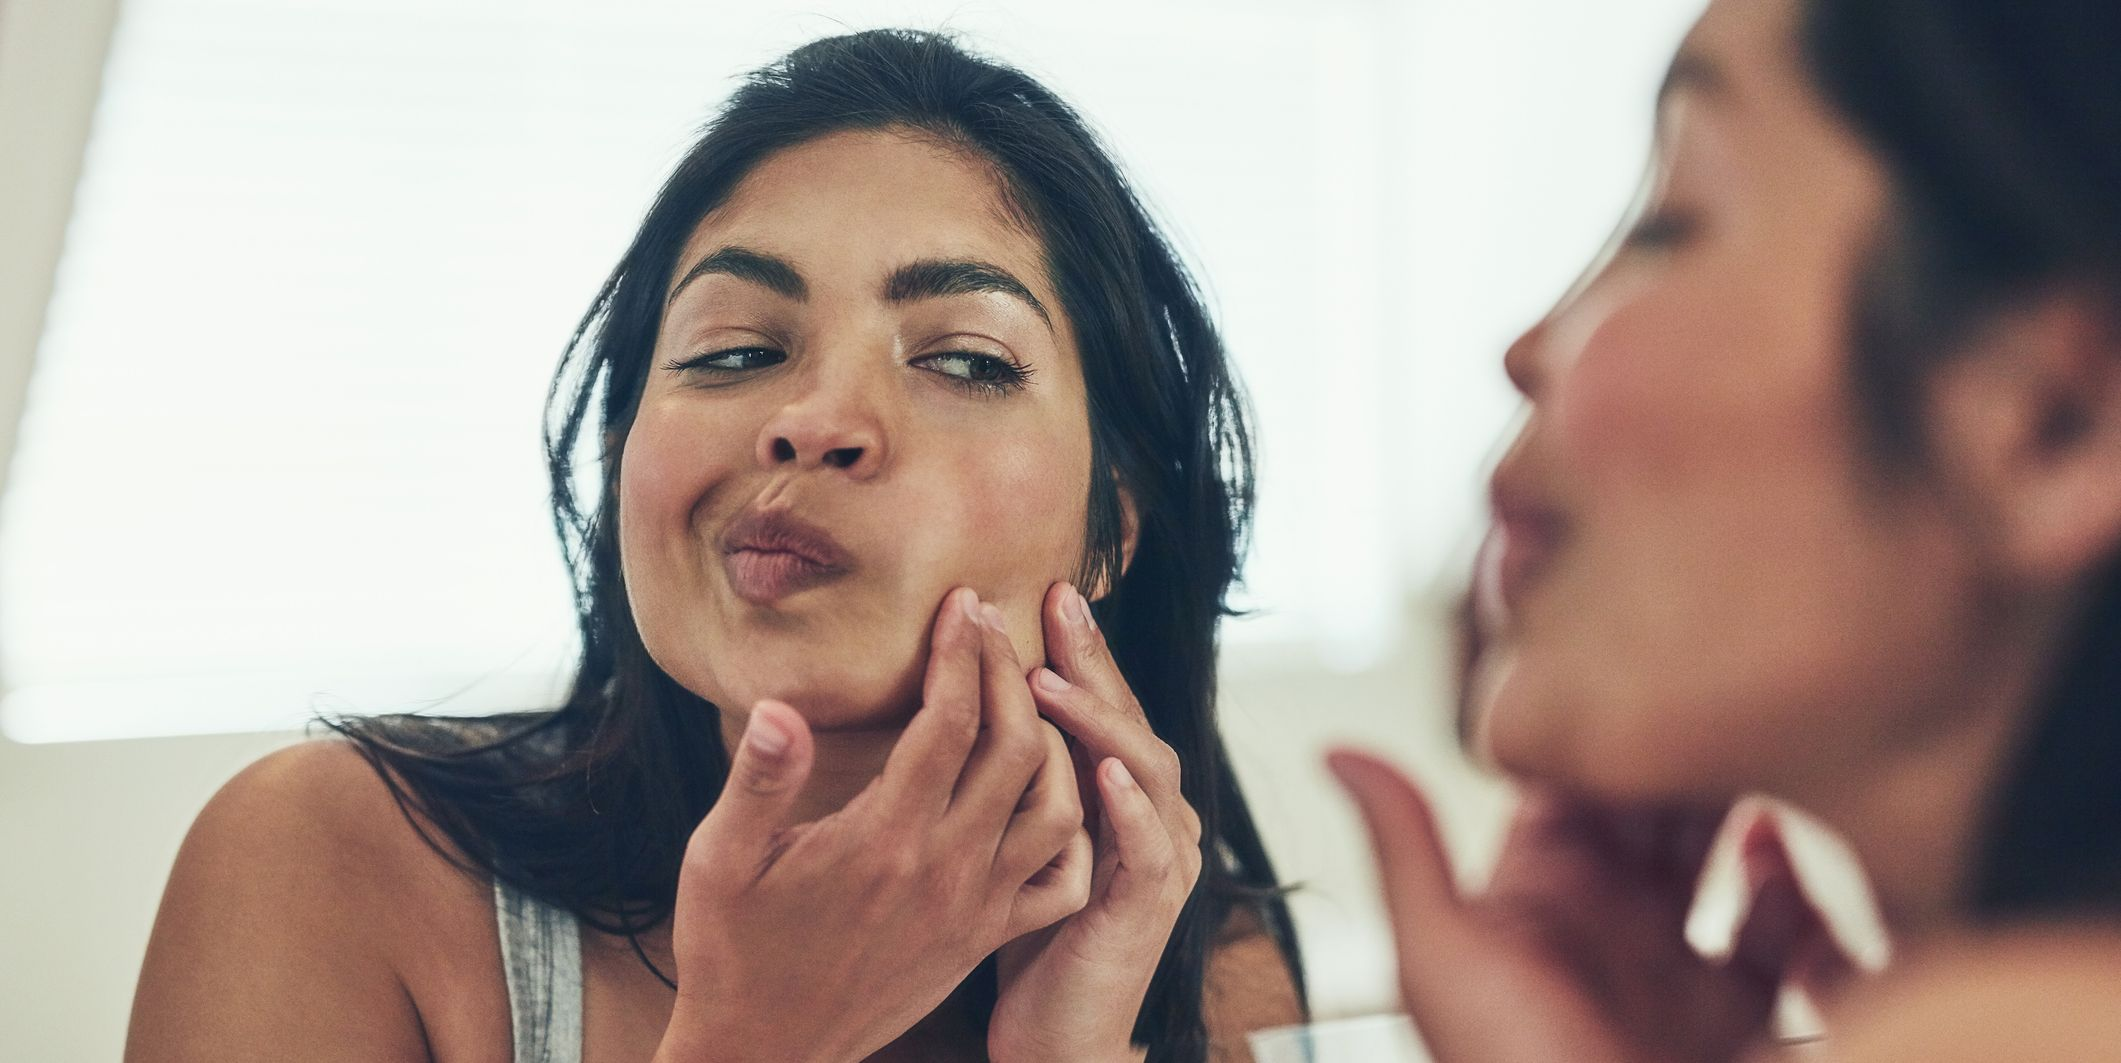 Why You Get Chin Acne and How To Fix It - Women's Health UK